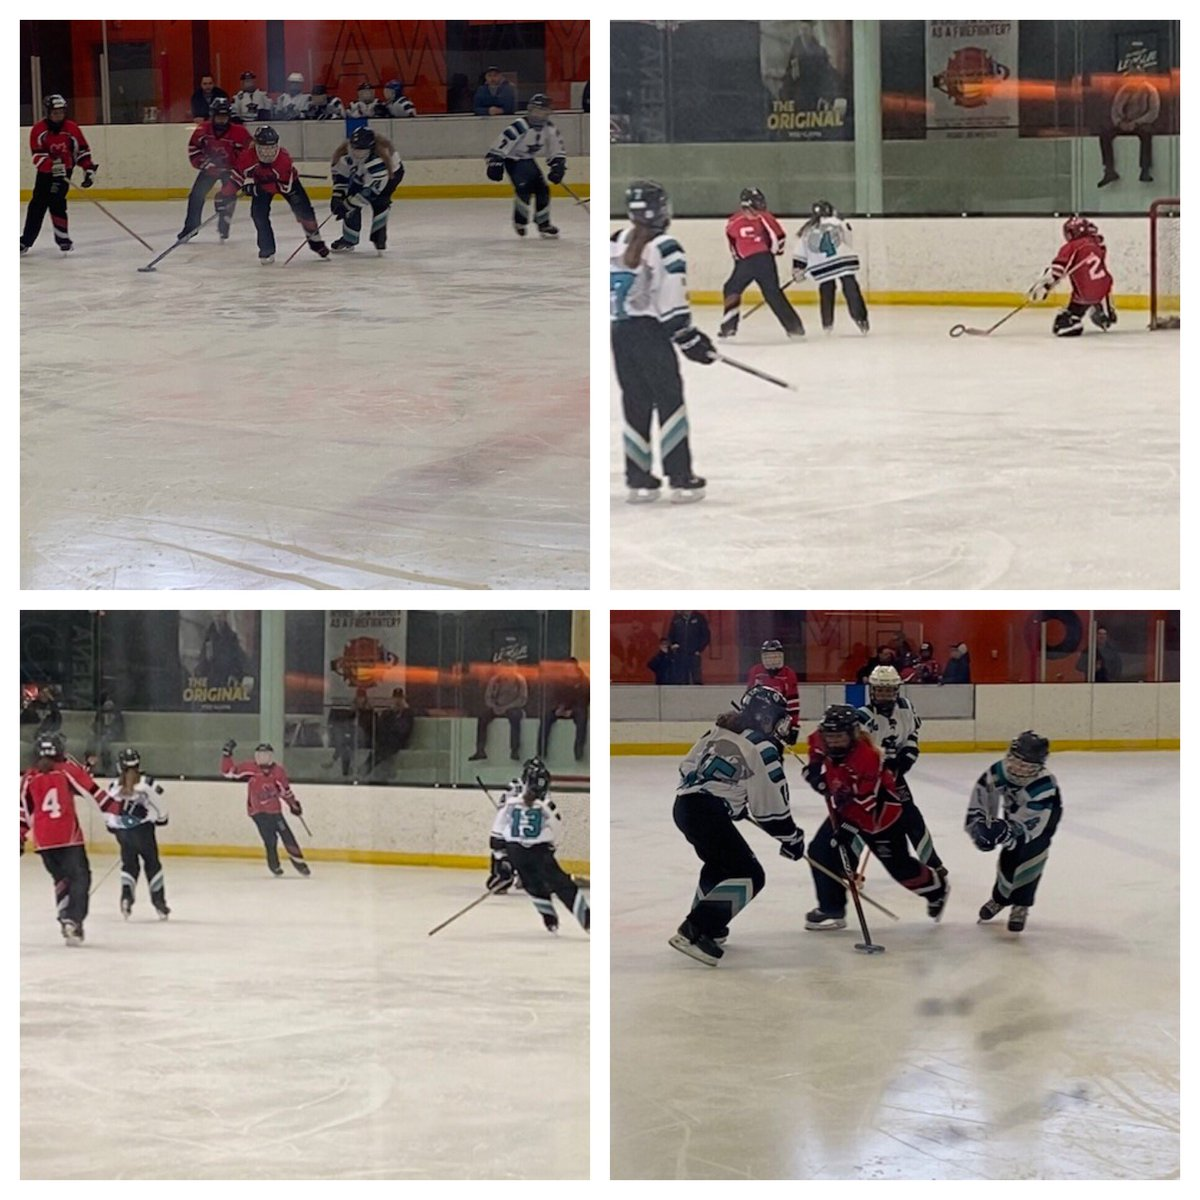 The U12A Hurricanes had a good game this morning with an 8-2 win vs the Leduc Jaguars in the South Calgary Ringette Association Ring in the Holidays tourney!  #spra #ringettetournament pic.twitter.com/M2H4oRmK2d